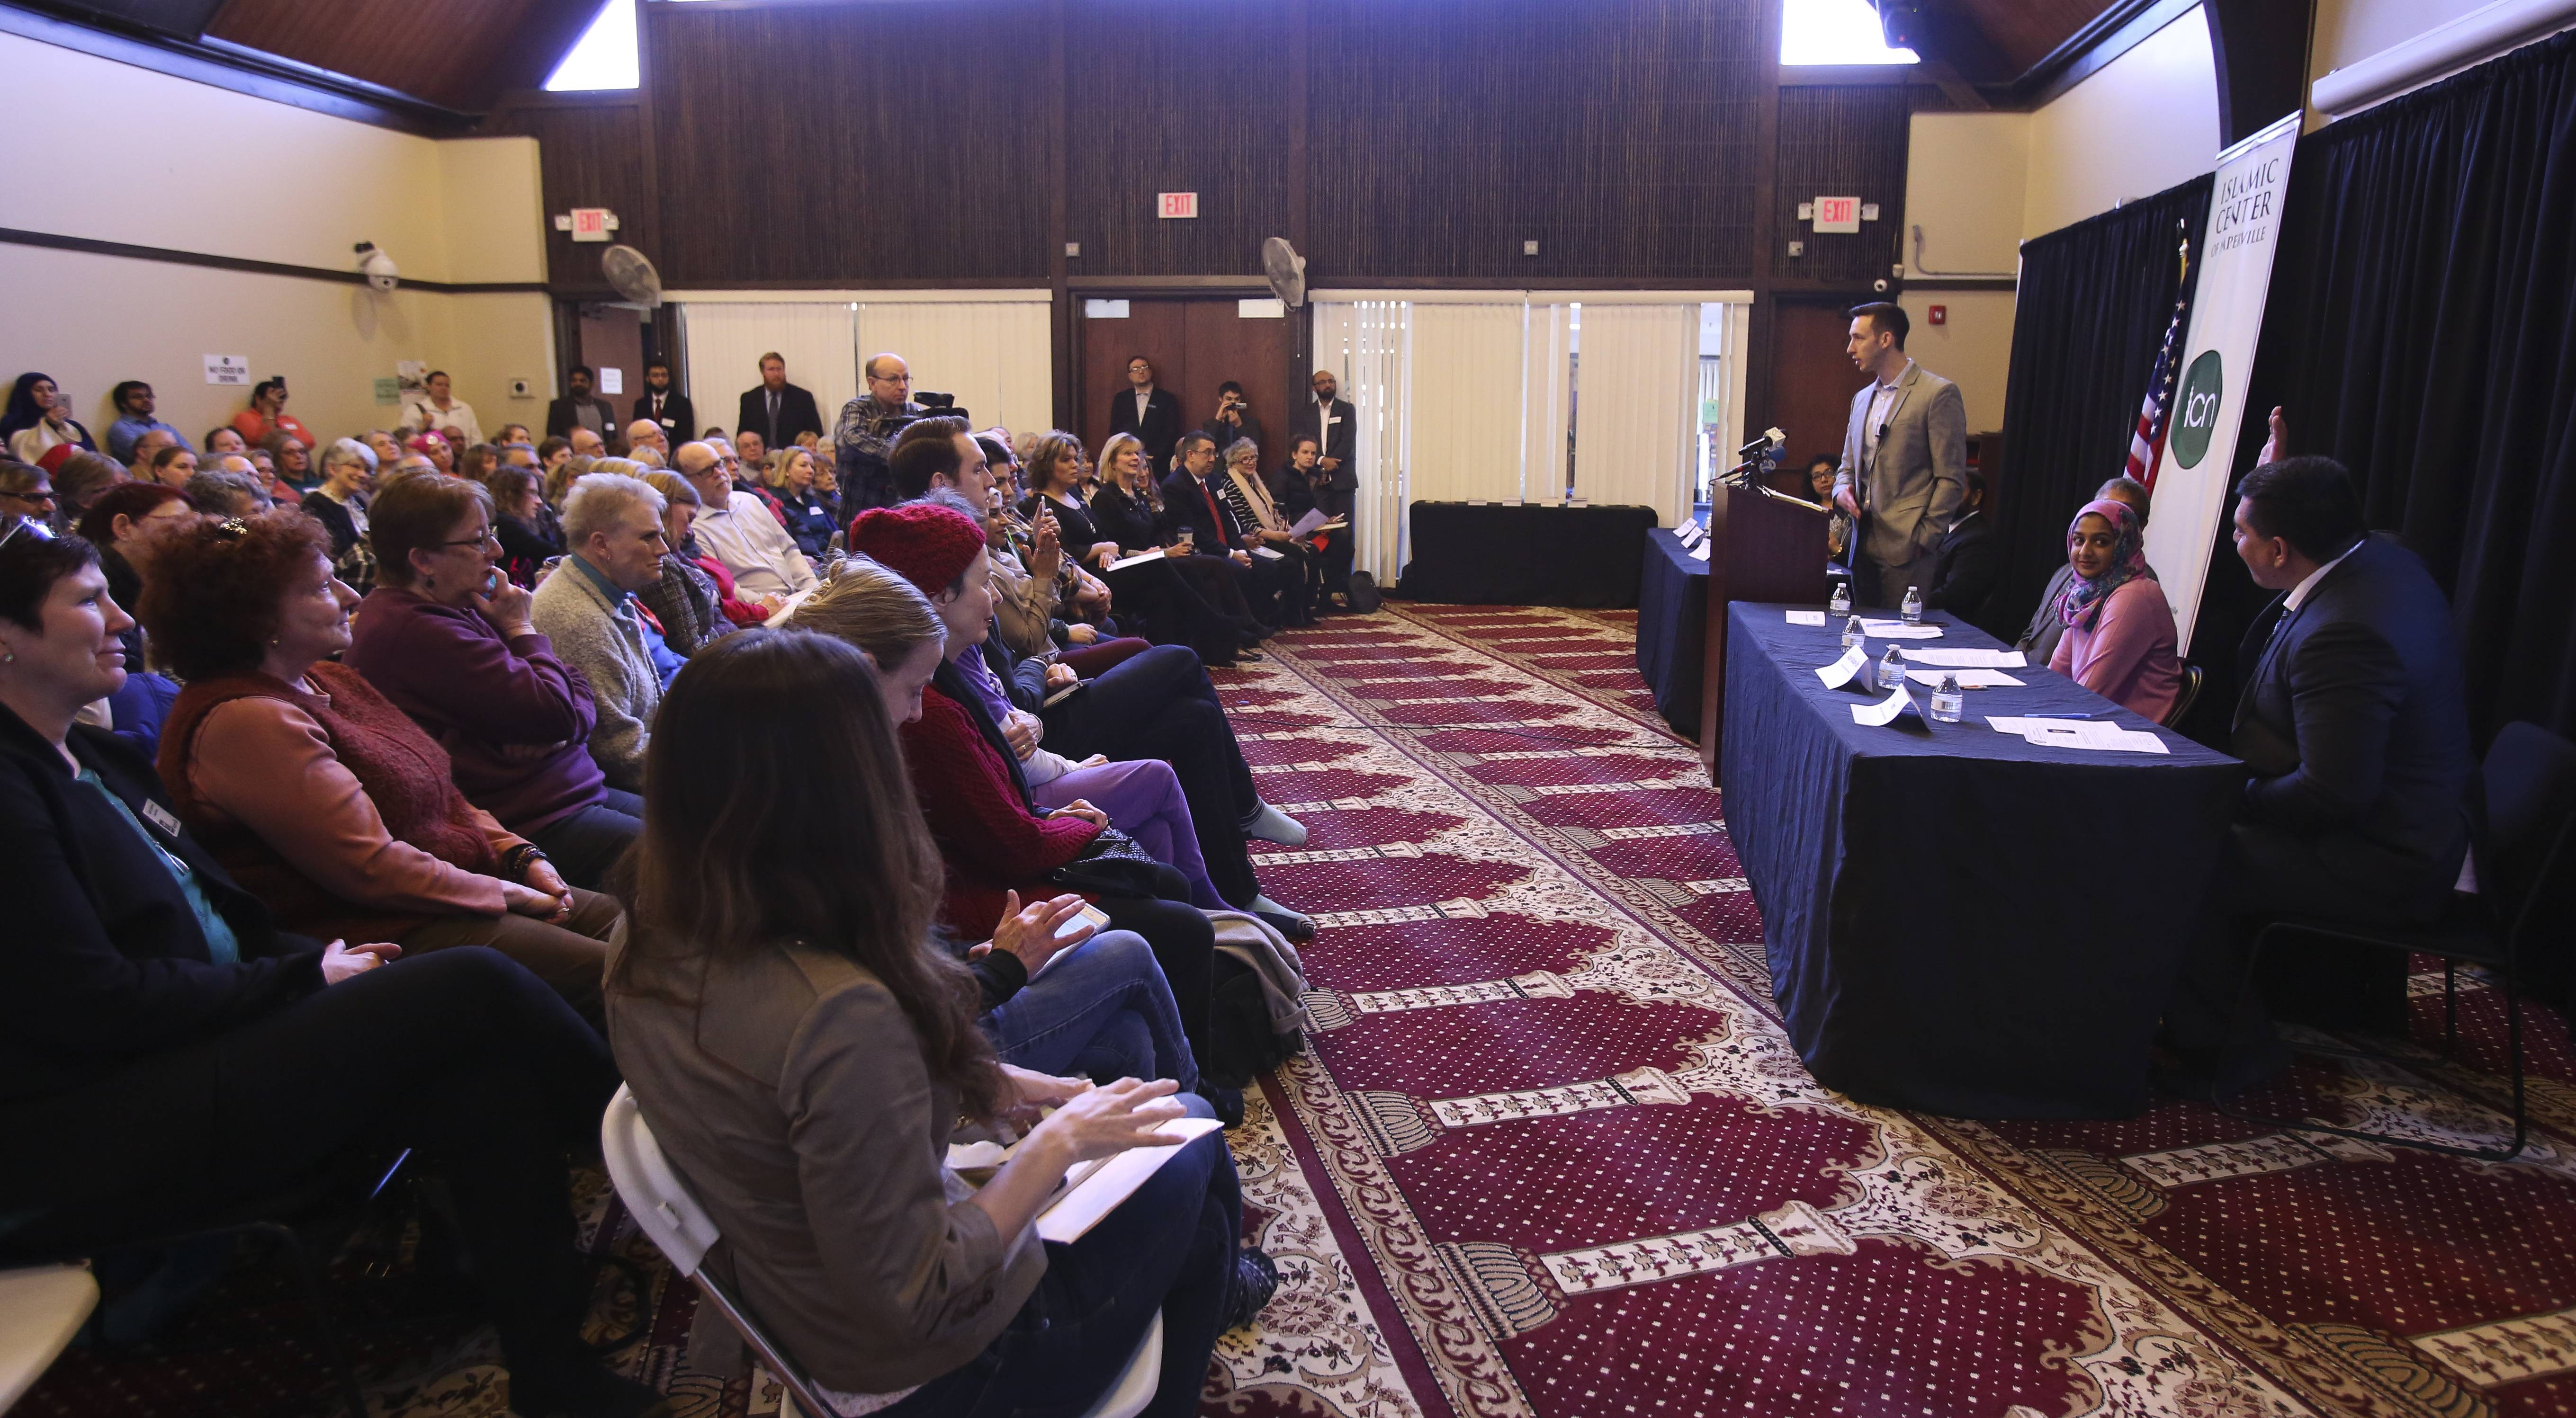 A crowd filled a prayer room at a Naperville mosque Monday for a discussion on immigration led by U.S. Rep. Bill Foster.